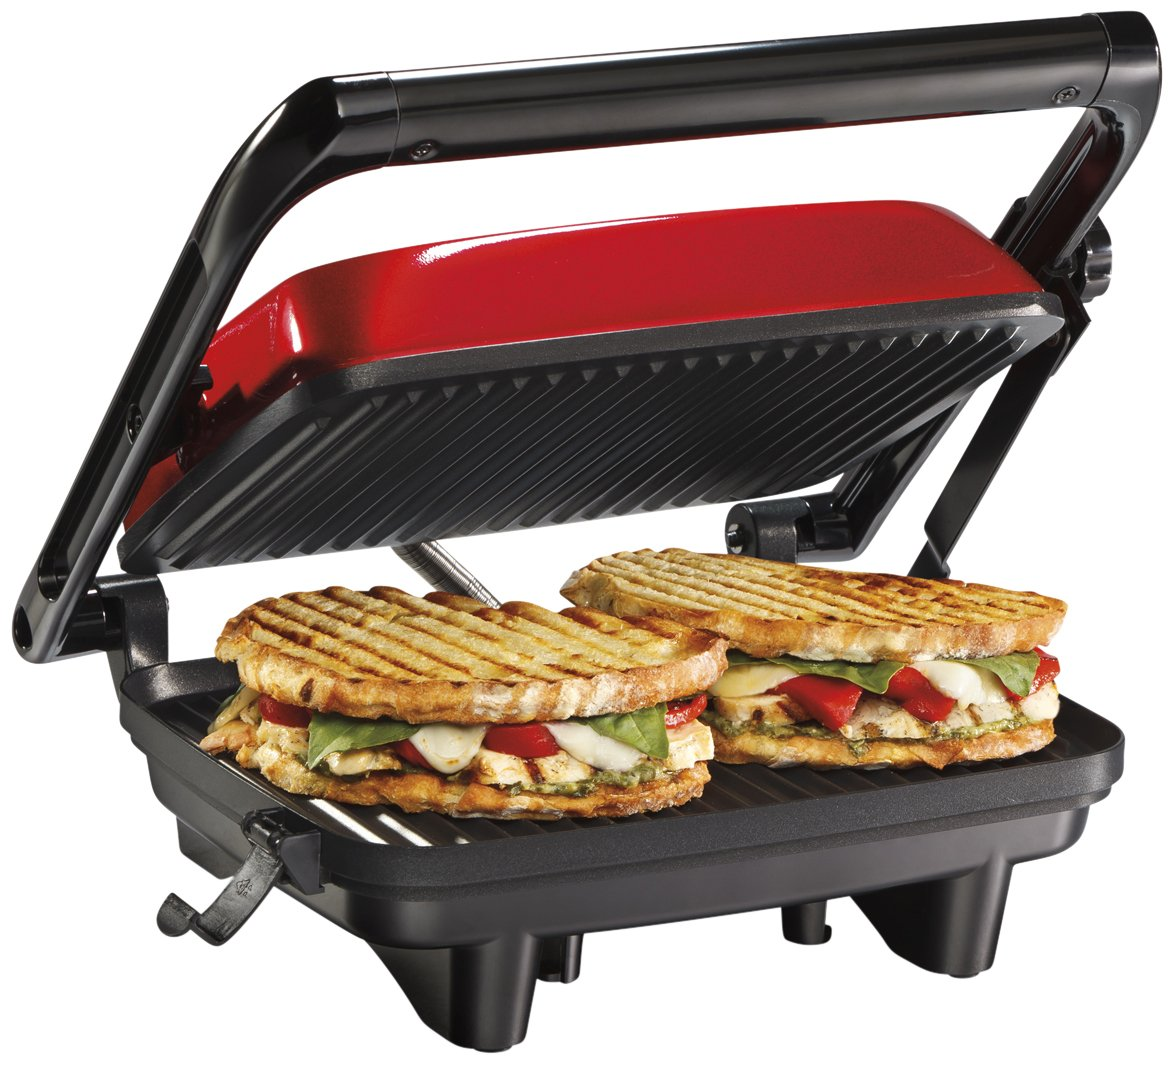 Hamilton Beach Electric Panini Press Grill with Locking Lid, Opens 180 Degrees for Any Sandwich Thickness, Nonstick 8'' x 10'' Grids, Red (25462Z) by Hamilton Beach